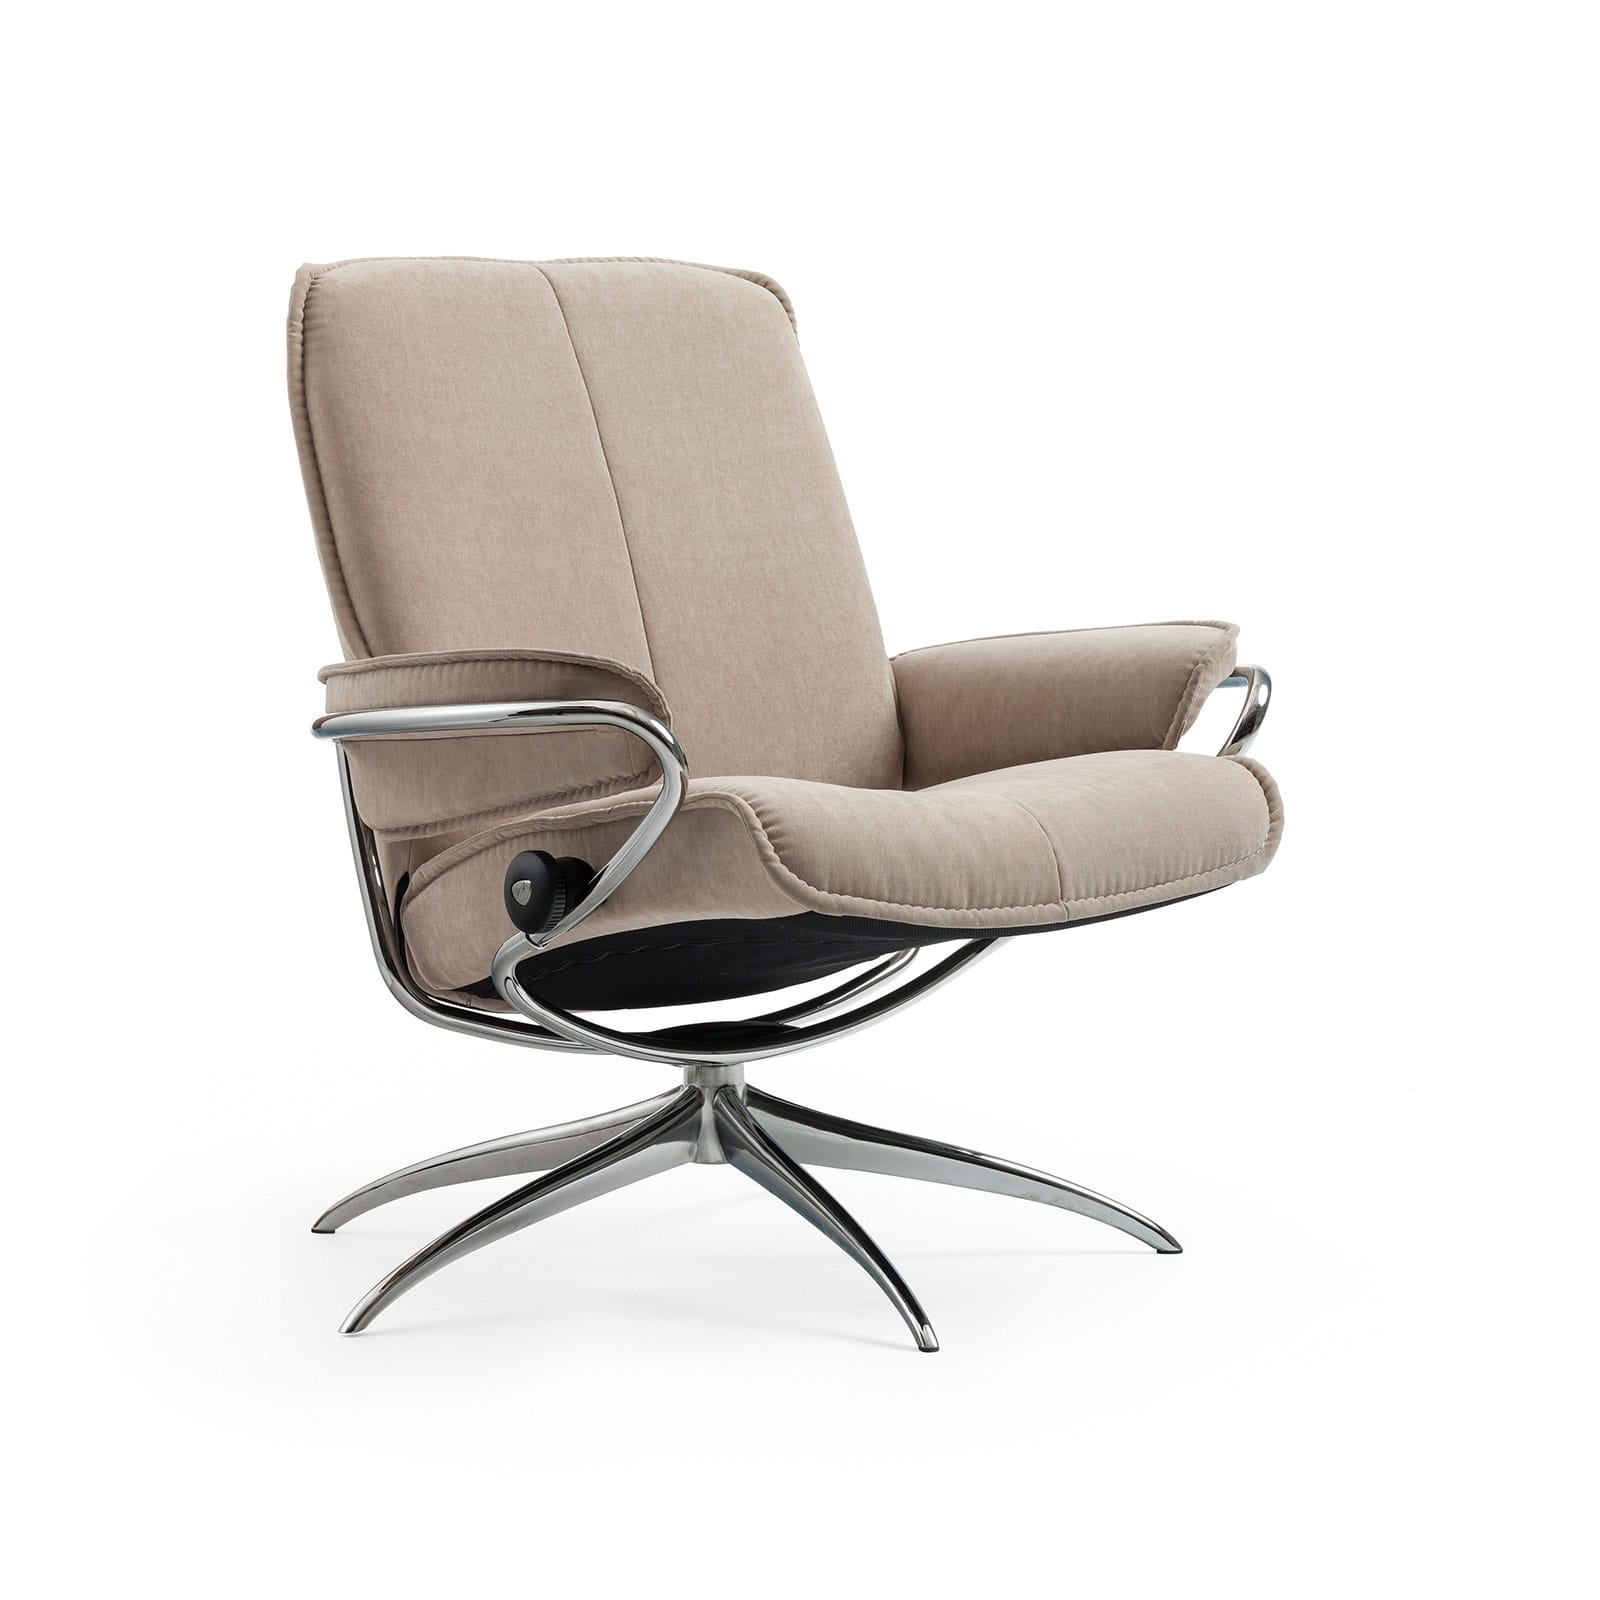 Stressless Sessel Stoff Stressless Sessel City Low Back Stressless Online Shop